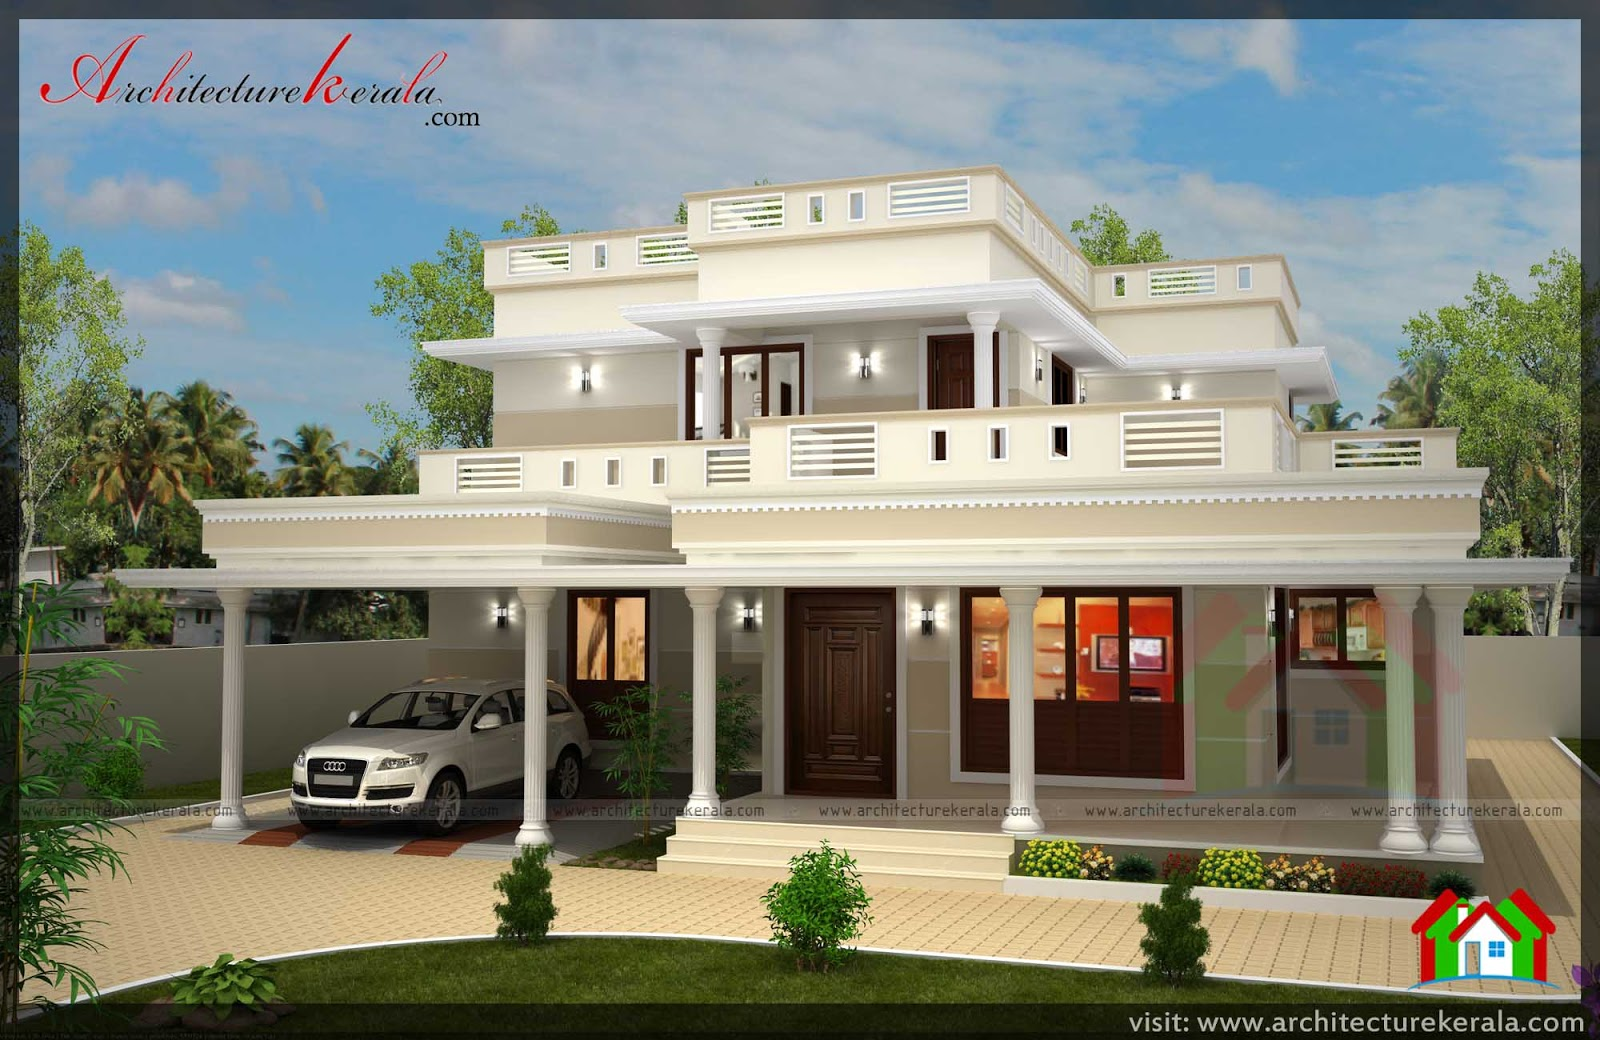 Stunning 4 bedroom kerala home design with pooja room free plan and elevation free kerala home - Room house design ...